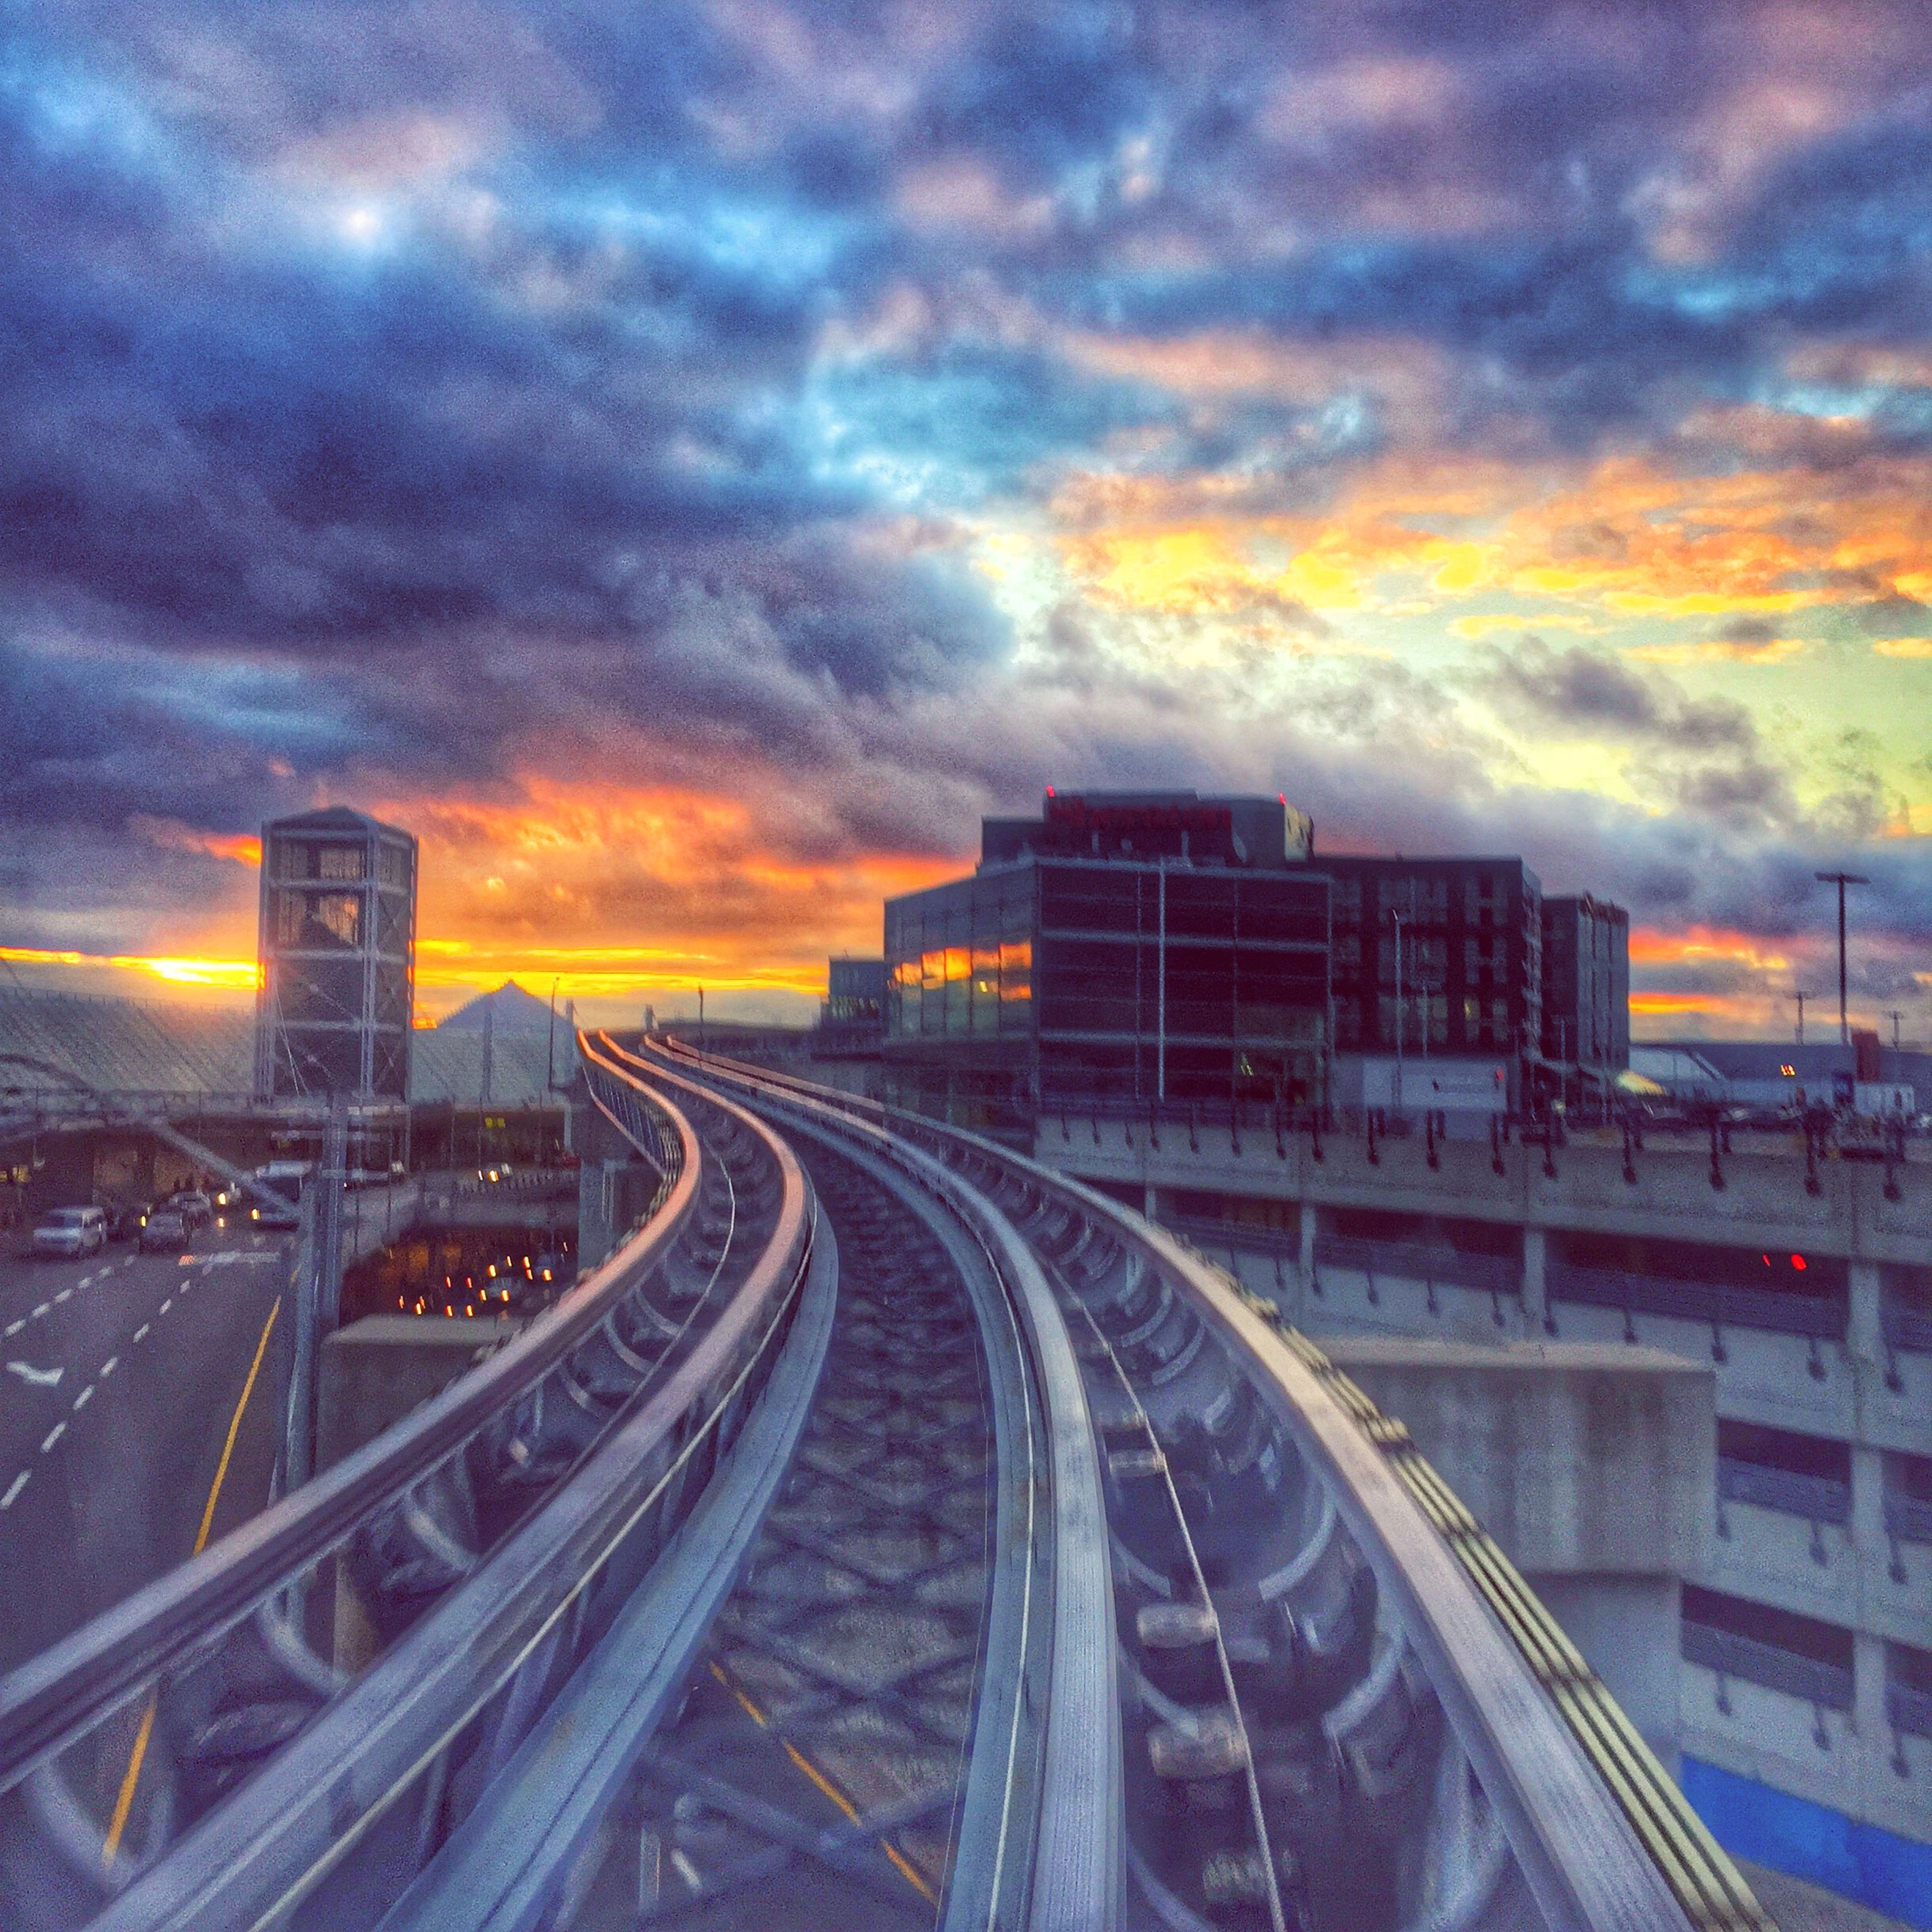 cloud - sky, sky, cloudy, sunset, architecture, weather, transportation, built structure, railroad track, building exterior, dramatic sky, overcast, the way forward, storm cloud, cloud, rail transportation, diminishing perspective, dusk, city, orange color